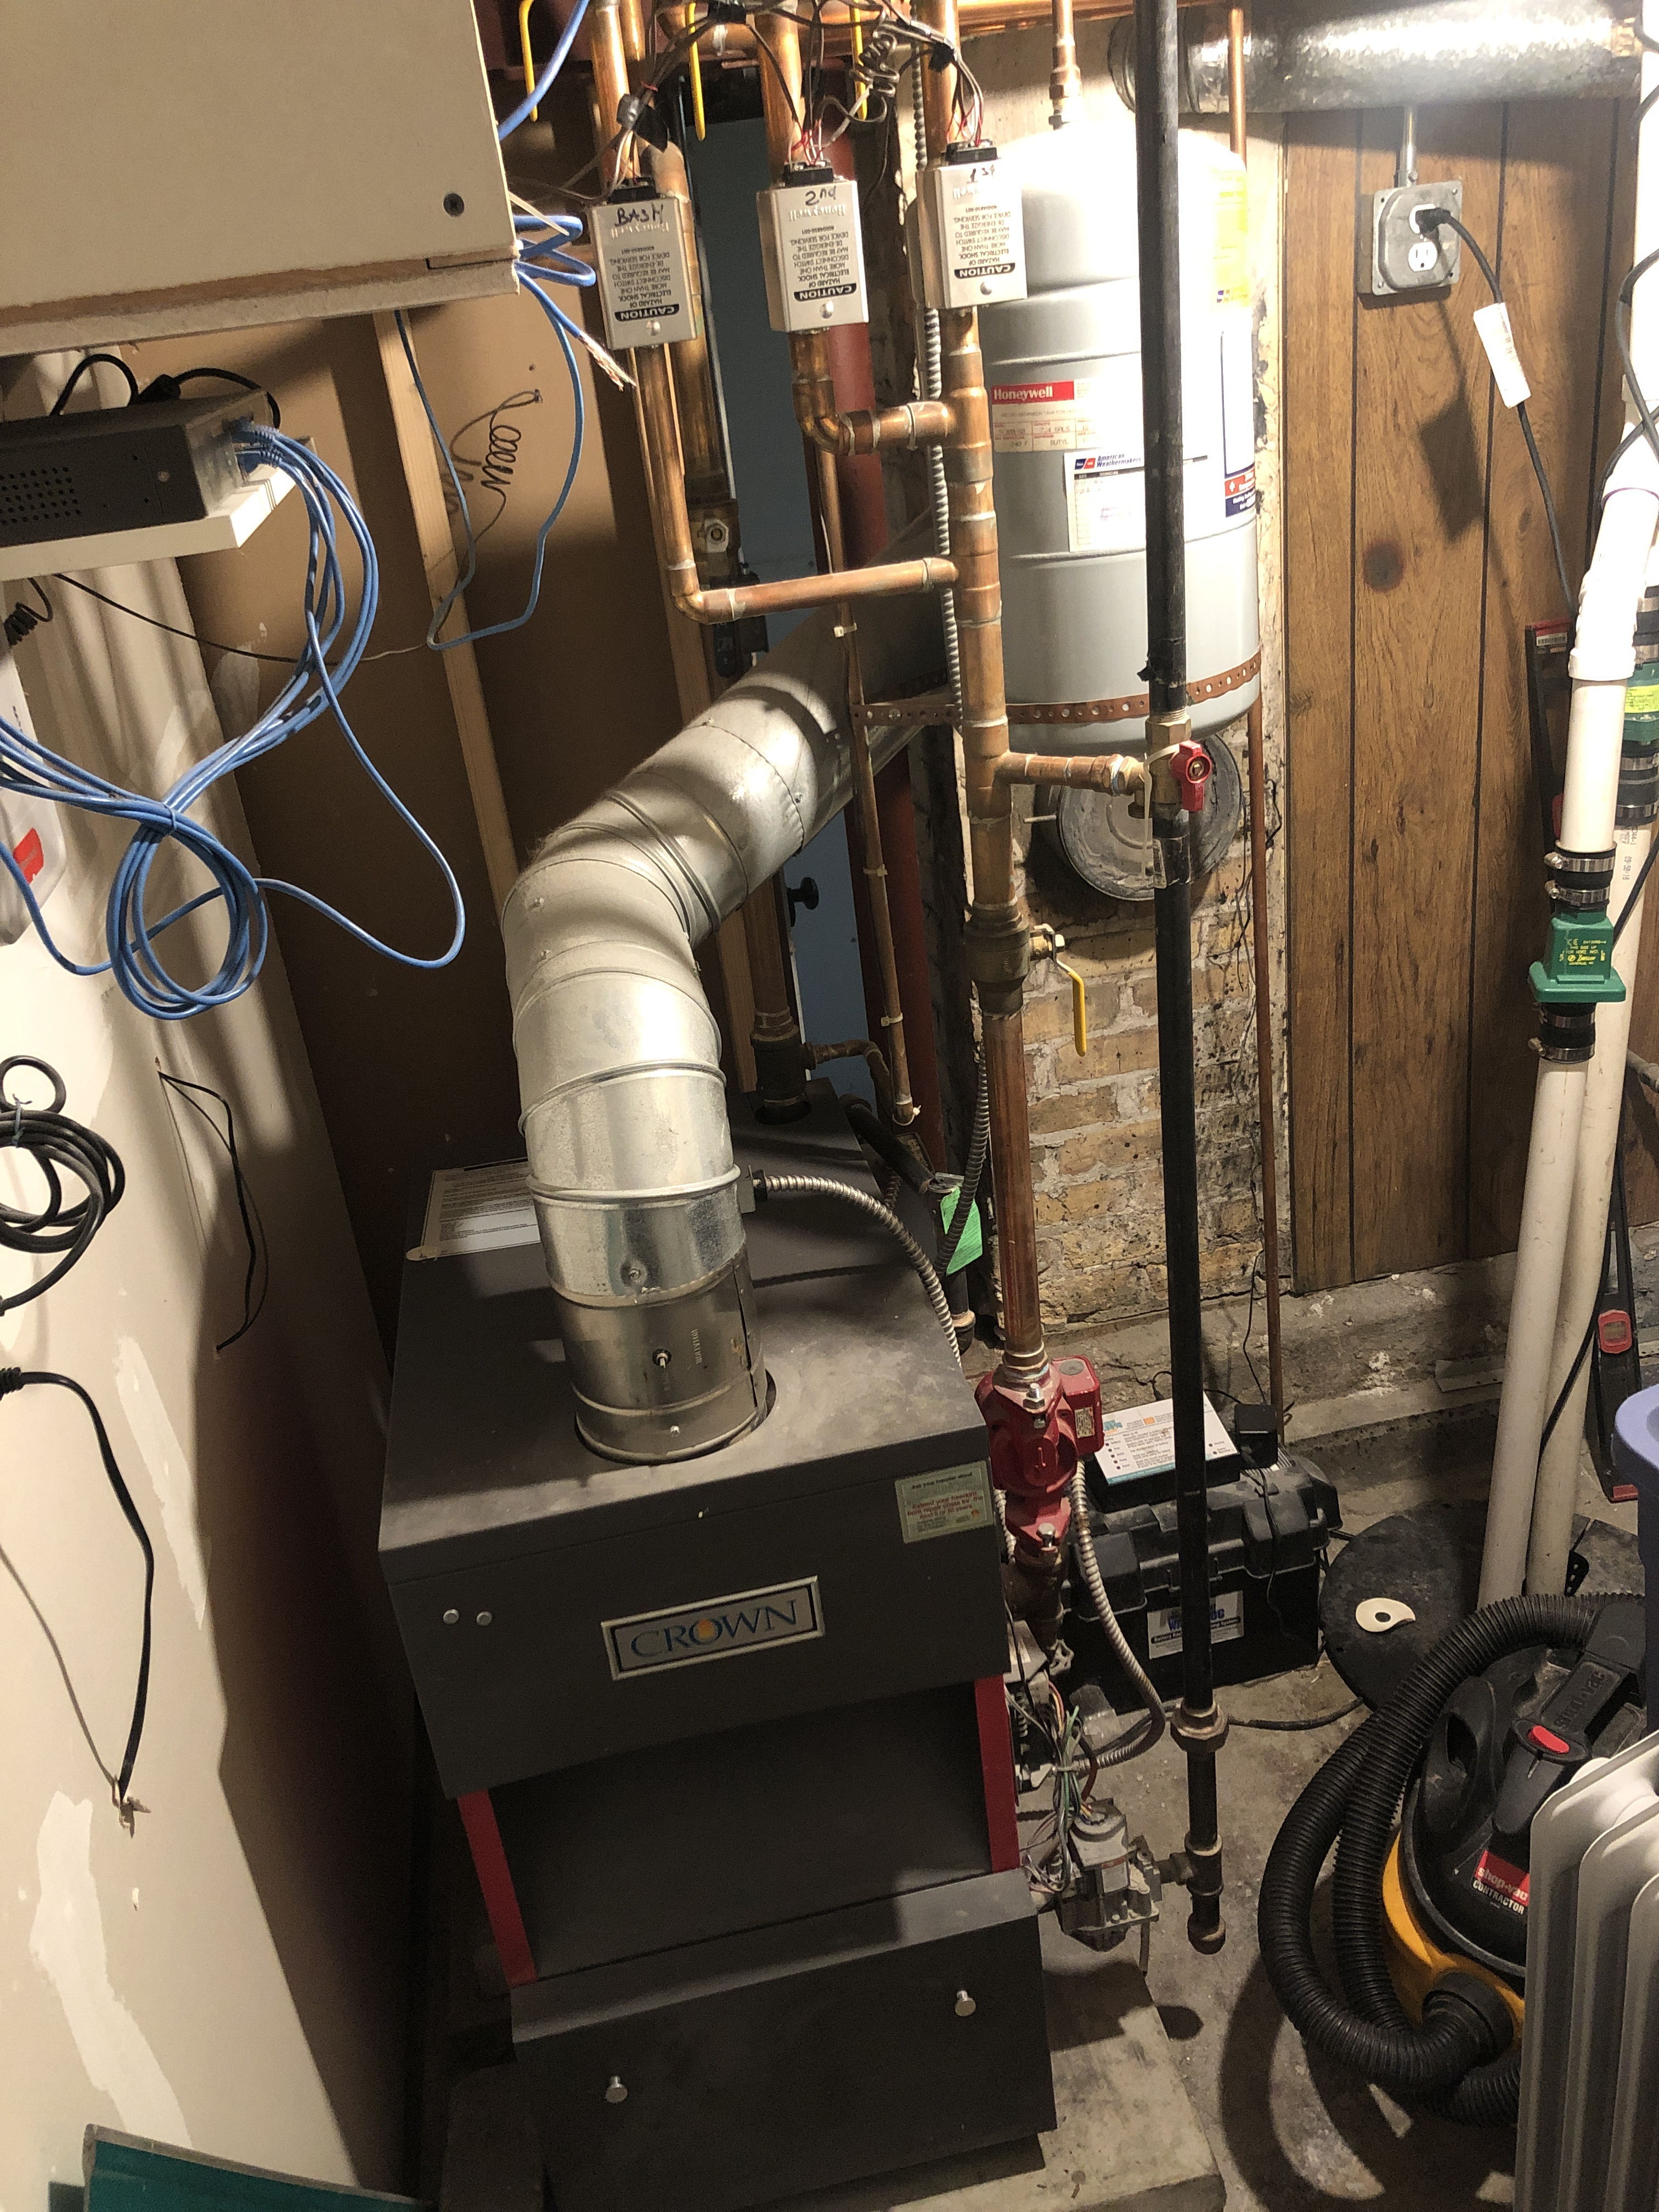 Provided club customer with annual preventative maintenance on there crown boiler and took measures to ensure the life expectancy of the equipment